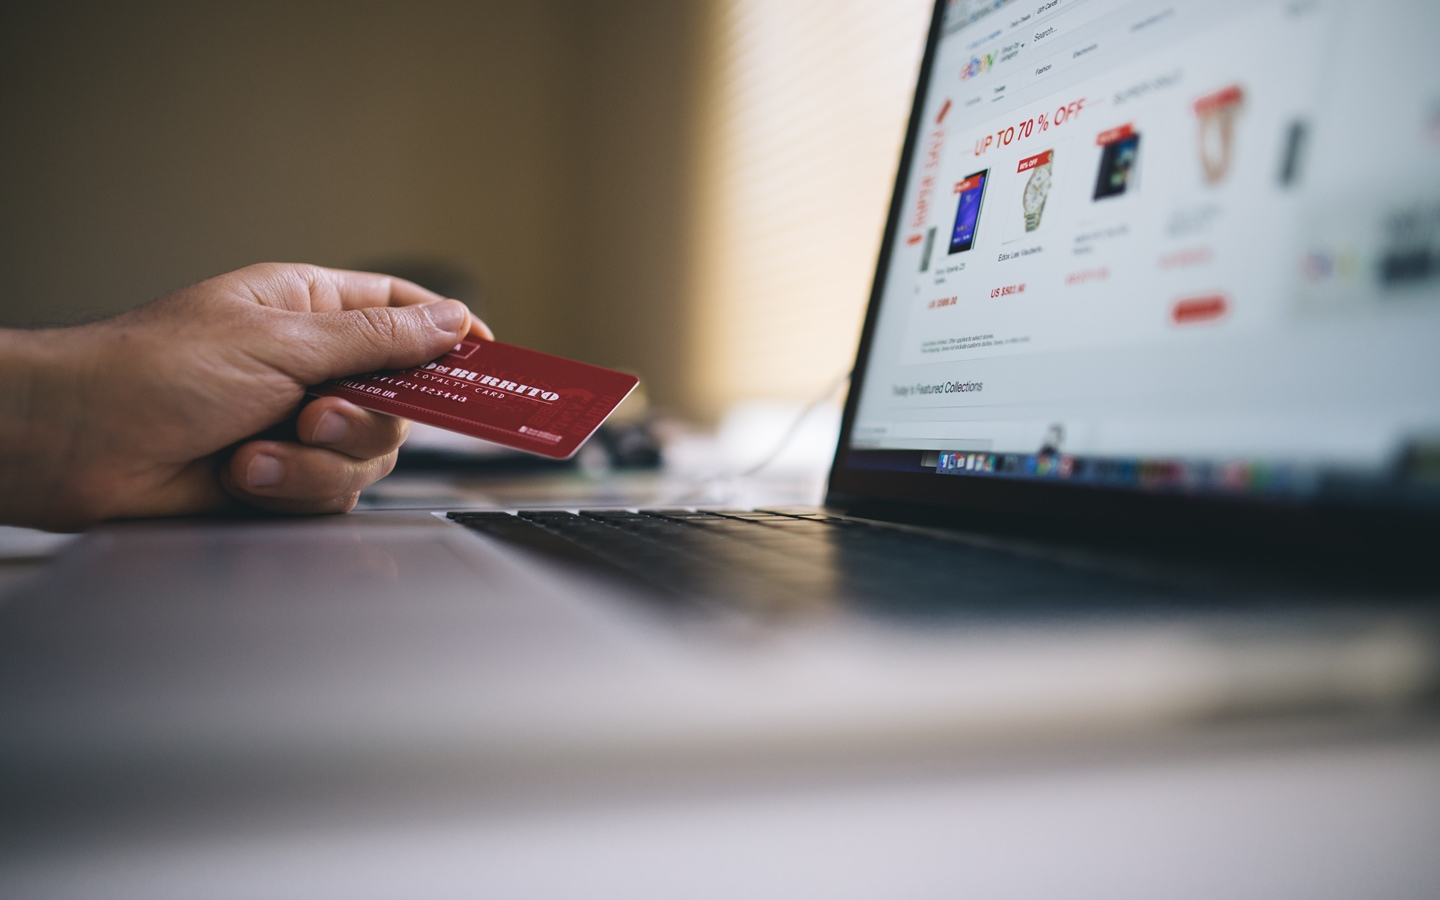 Online shopping allows people to buy winter clothes at any time of the day